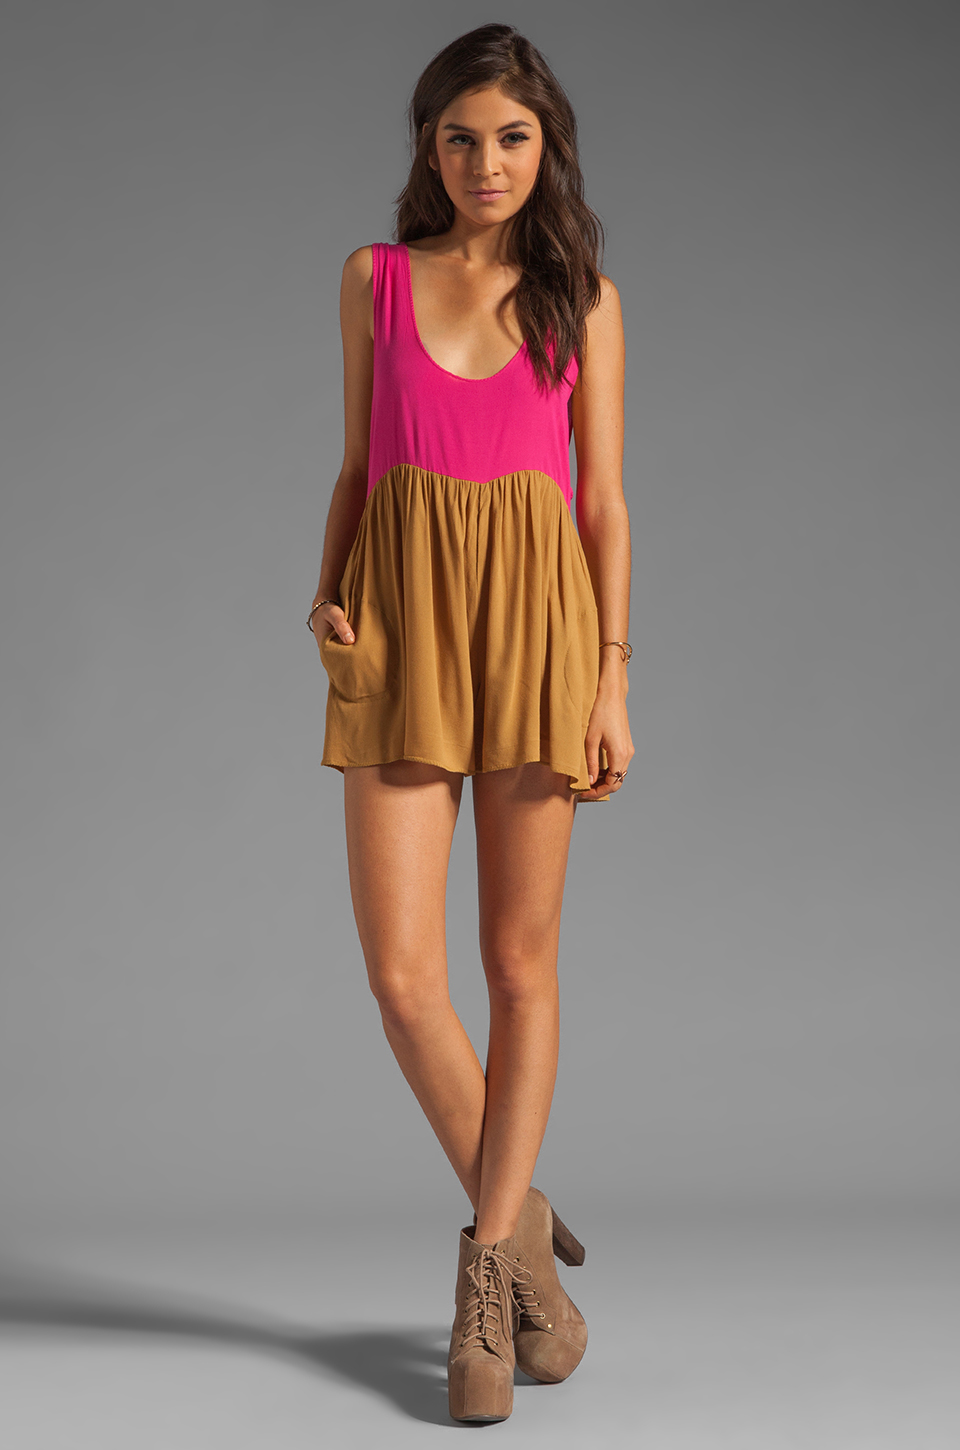 One Teaspoon Heartbreaker Cali Colorblock Mini Romper in Hot Pink/Tobacco